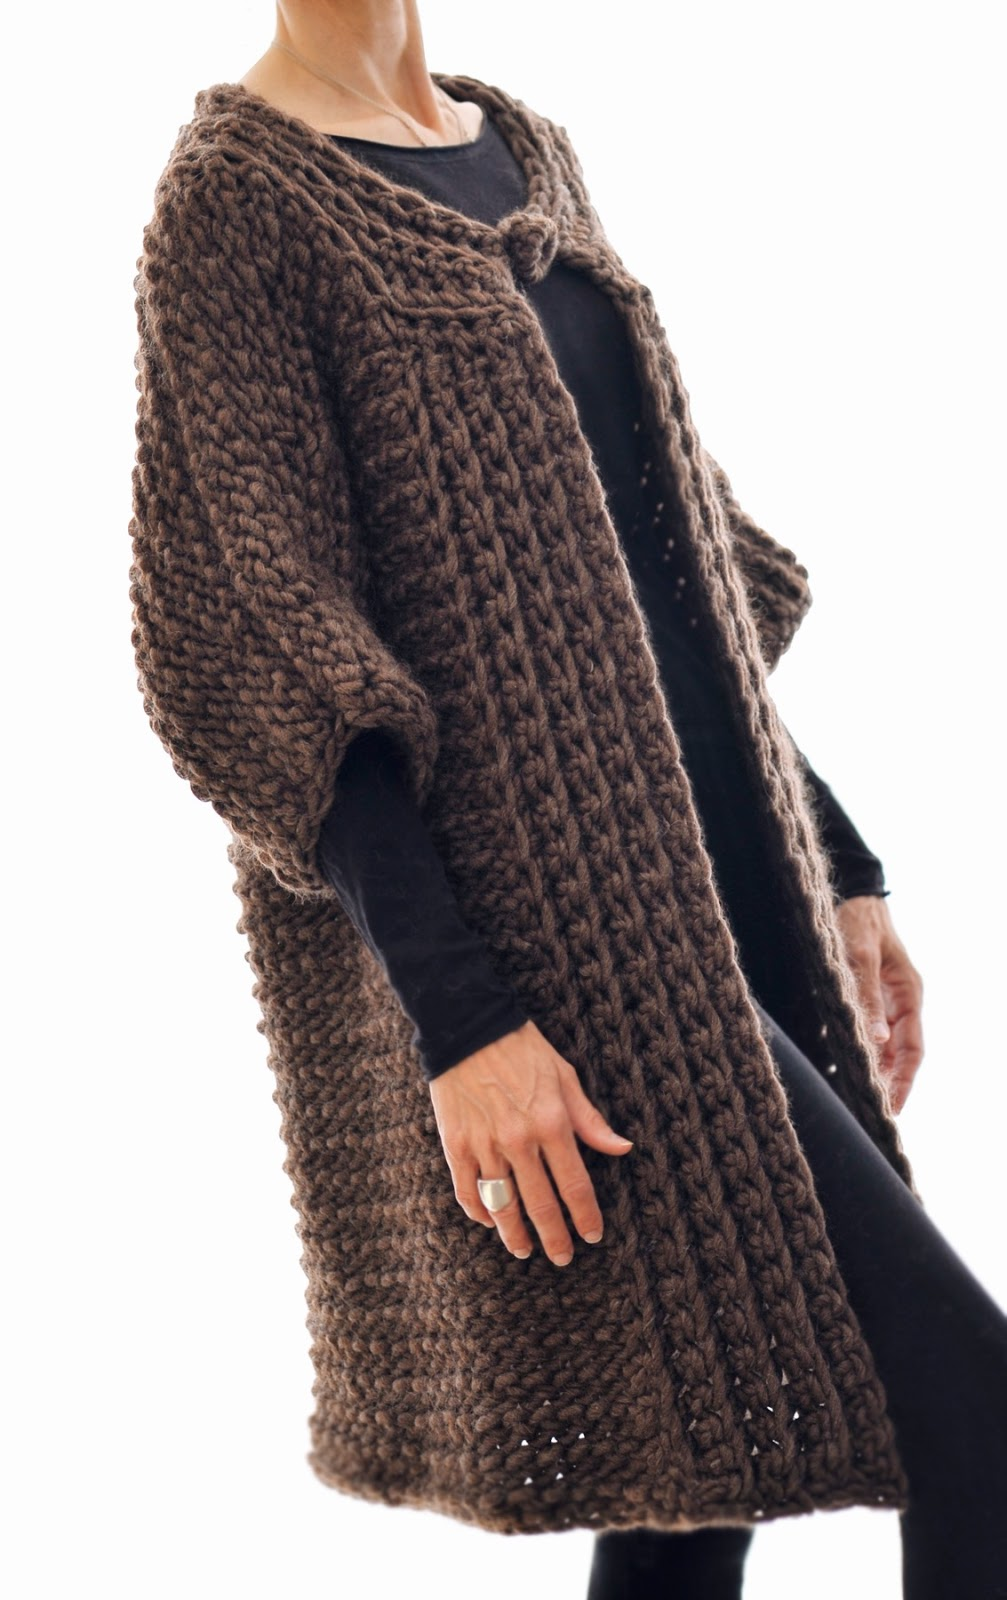 Knit 1 LA: the Swing Coat (Tunisian Crochet)